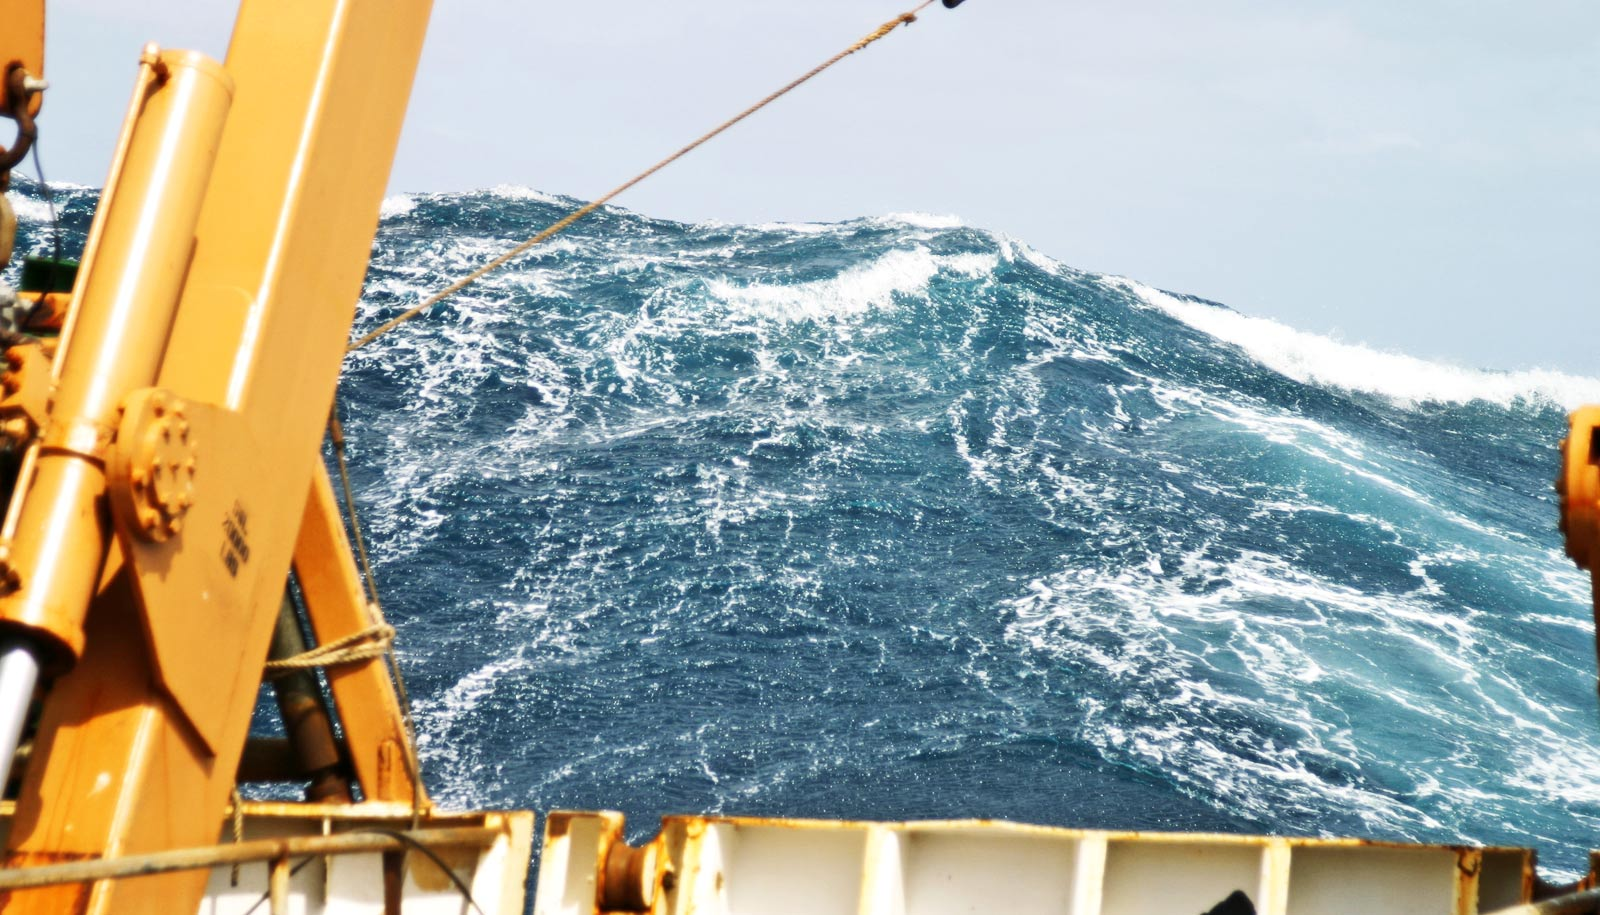 How a 'bad day at the ocean' creates rogue waves - Futurity